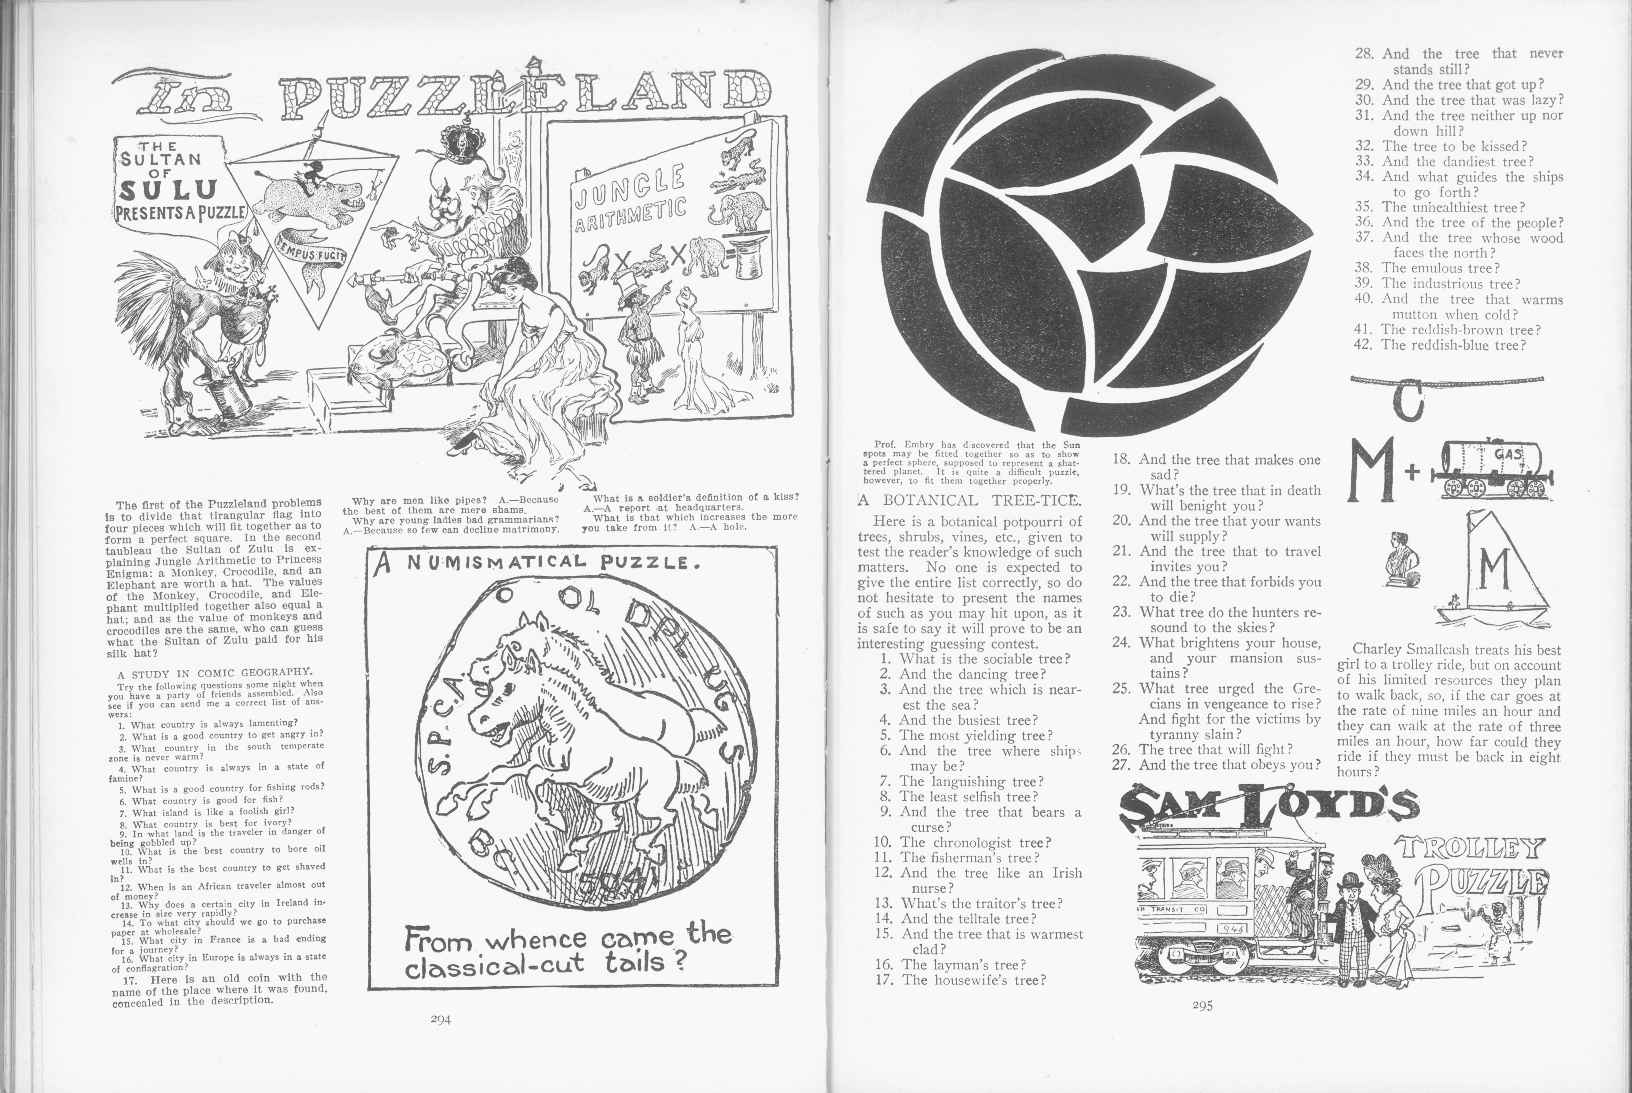 Sam Loyd - Cyclopedia of Puzzles - page 294-295